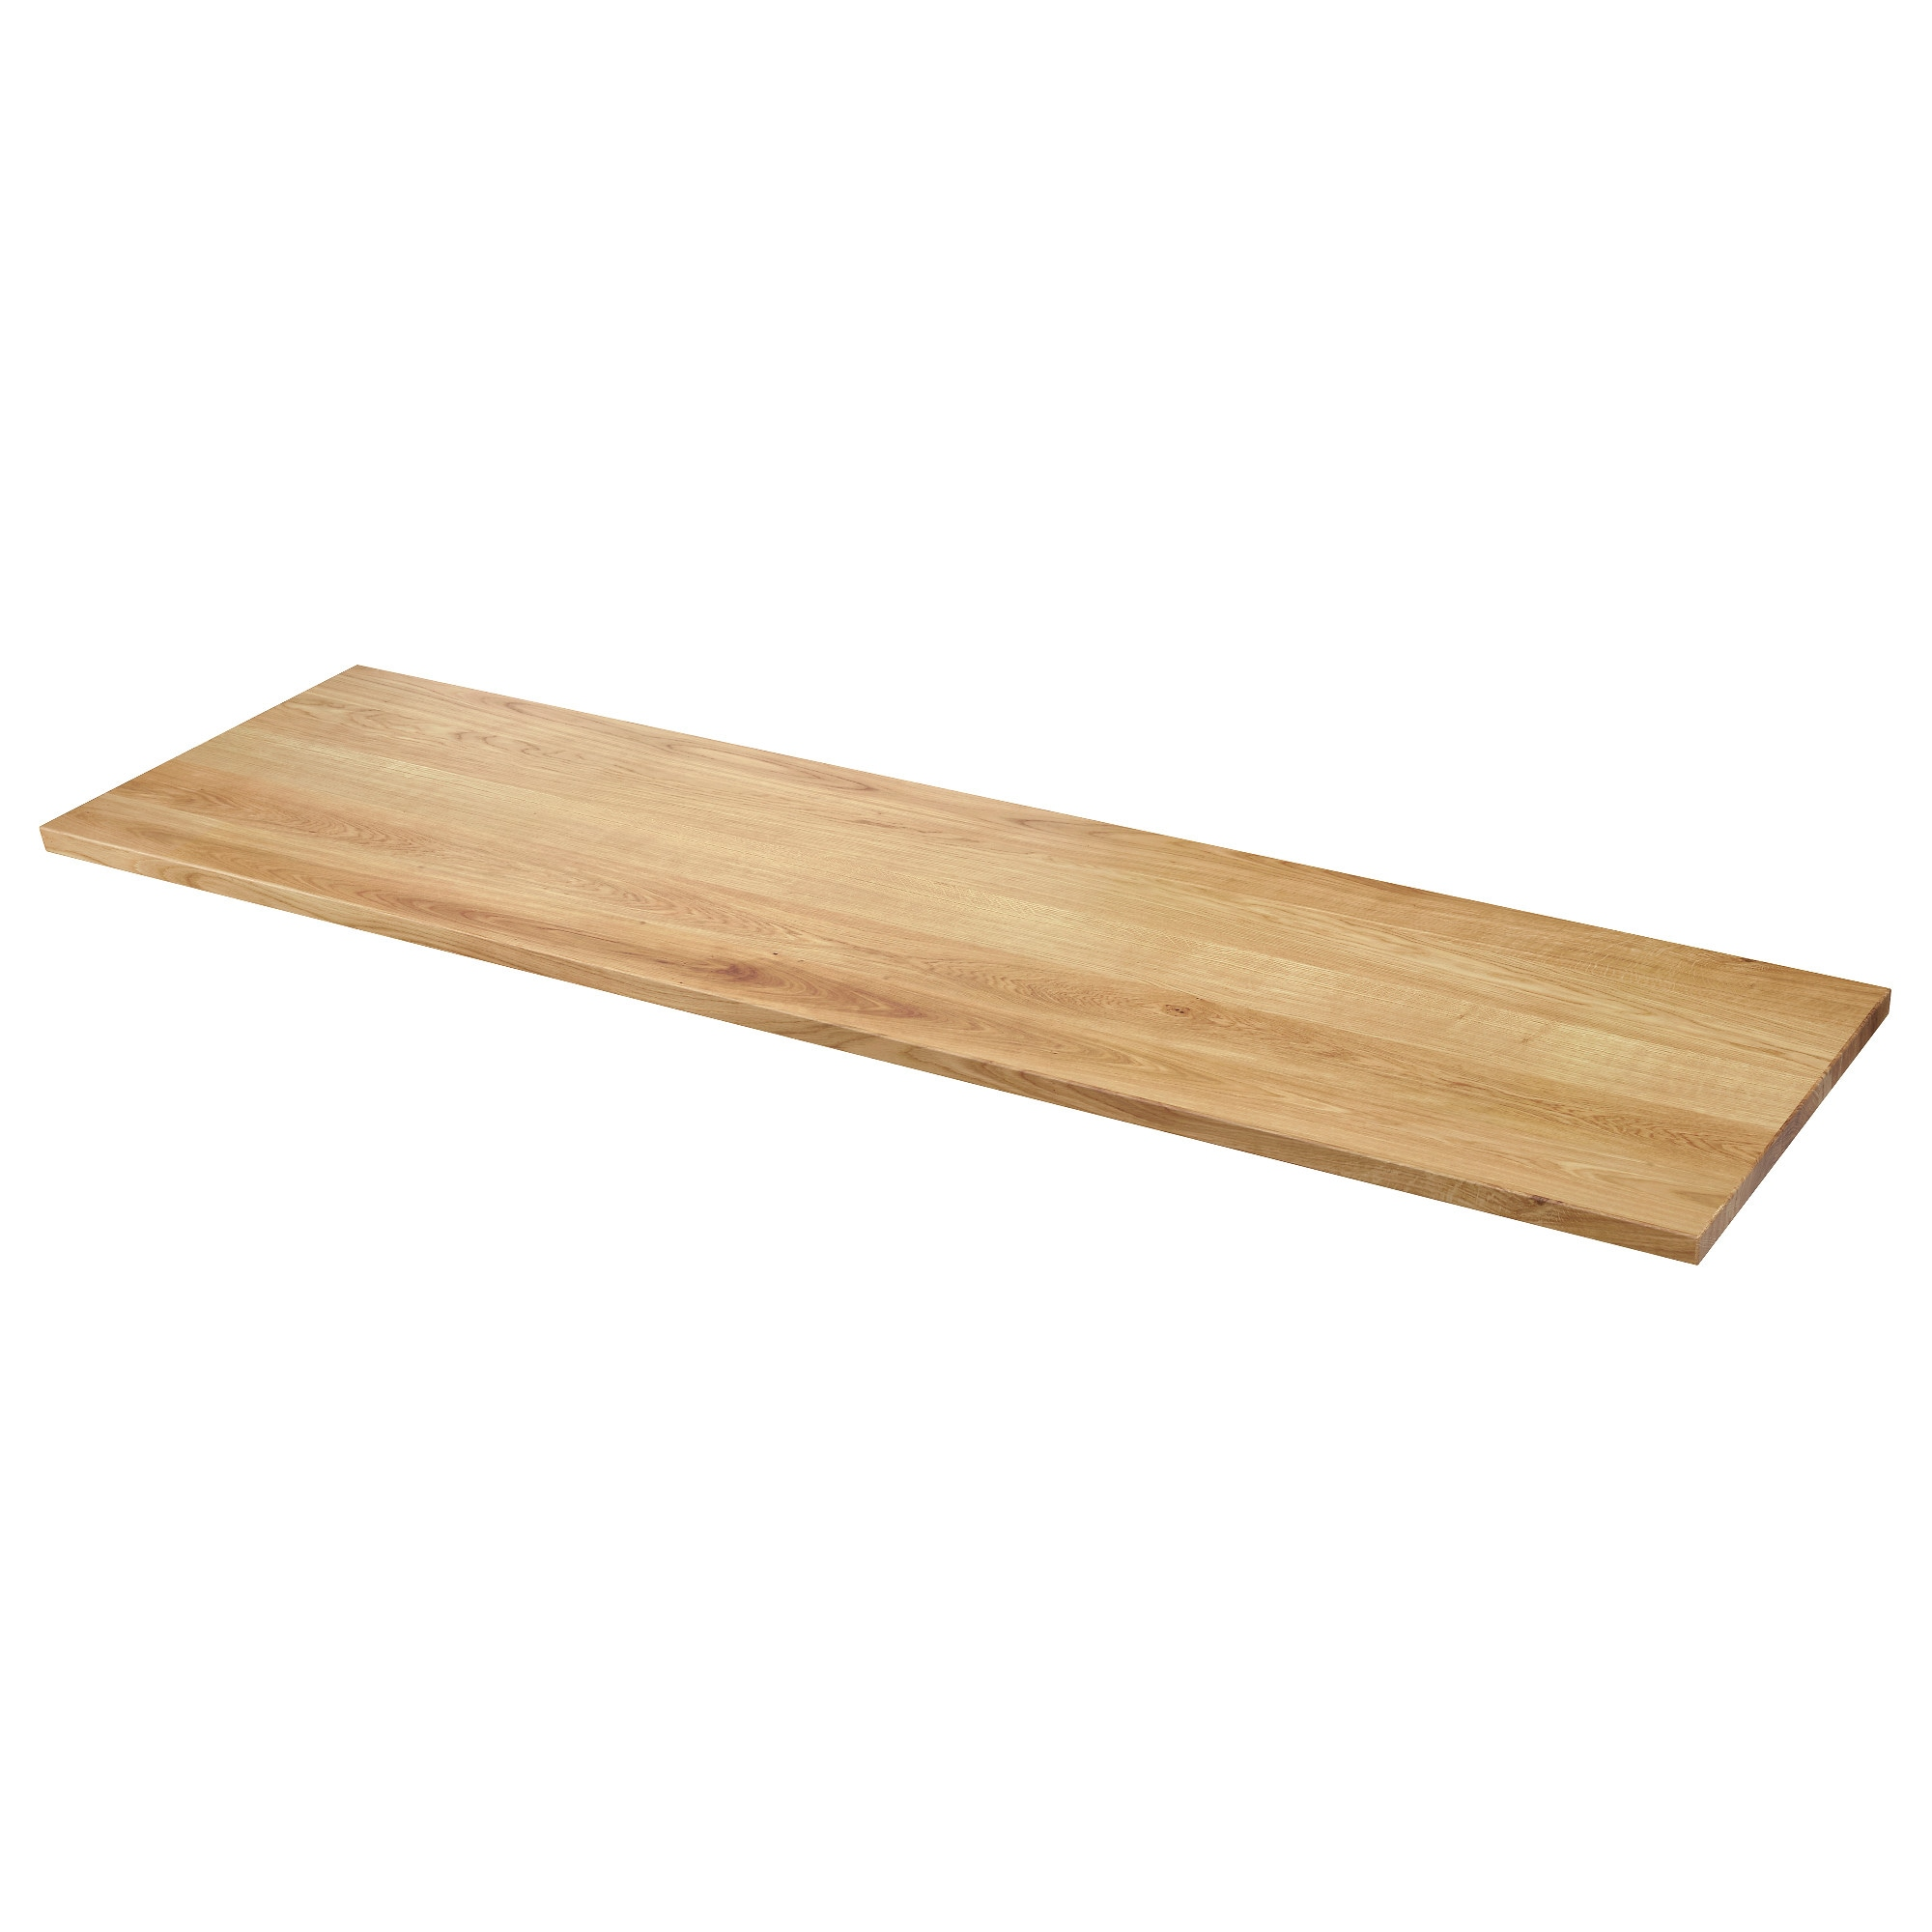 Uncategorized Pre Cut Kitchen Countertops countertops ikea countertop oak length 98 depth 25 58 thickness